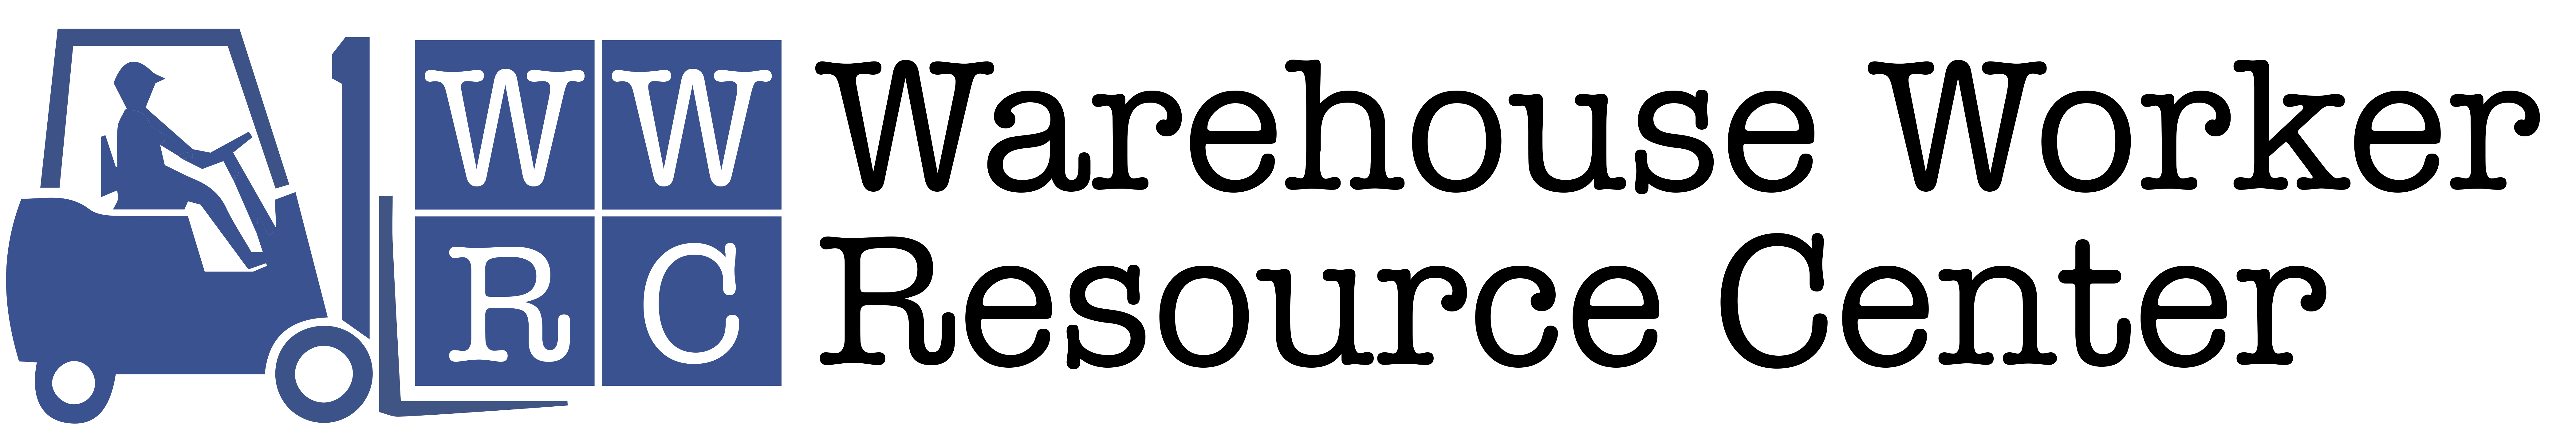 logo for the Warehouse Worker Resource Center